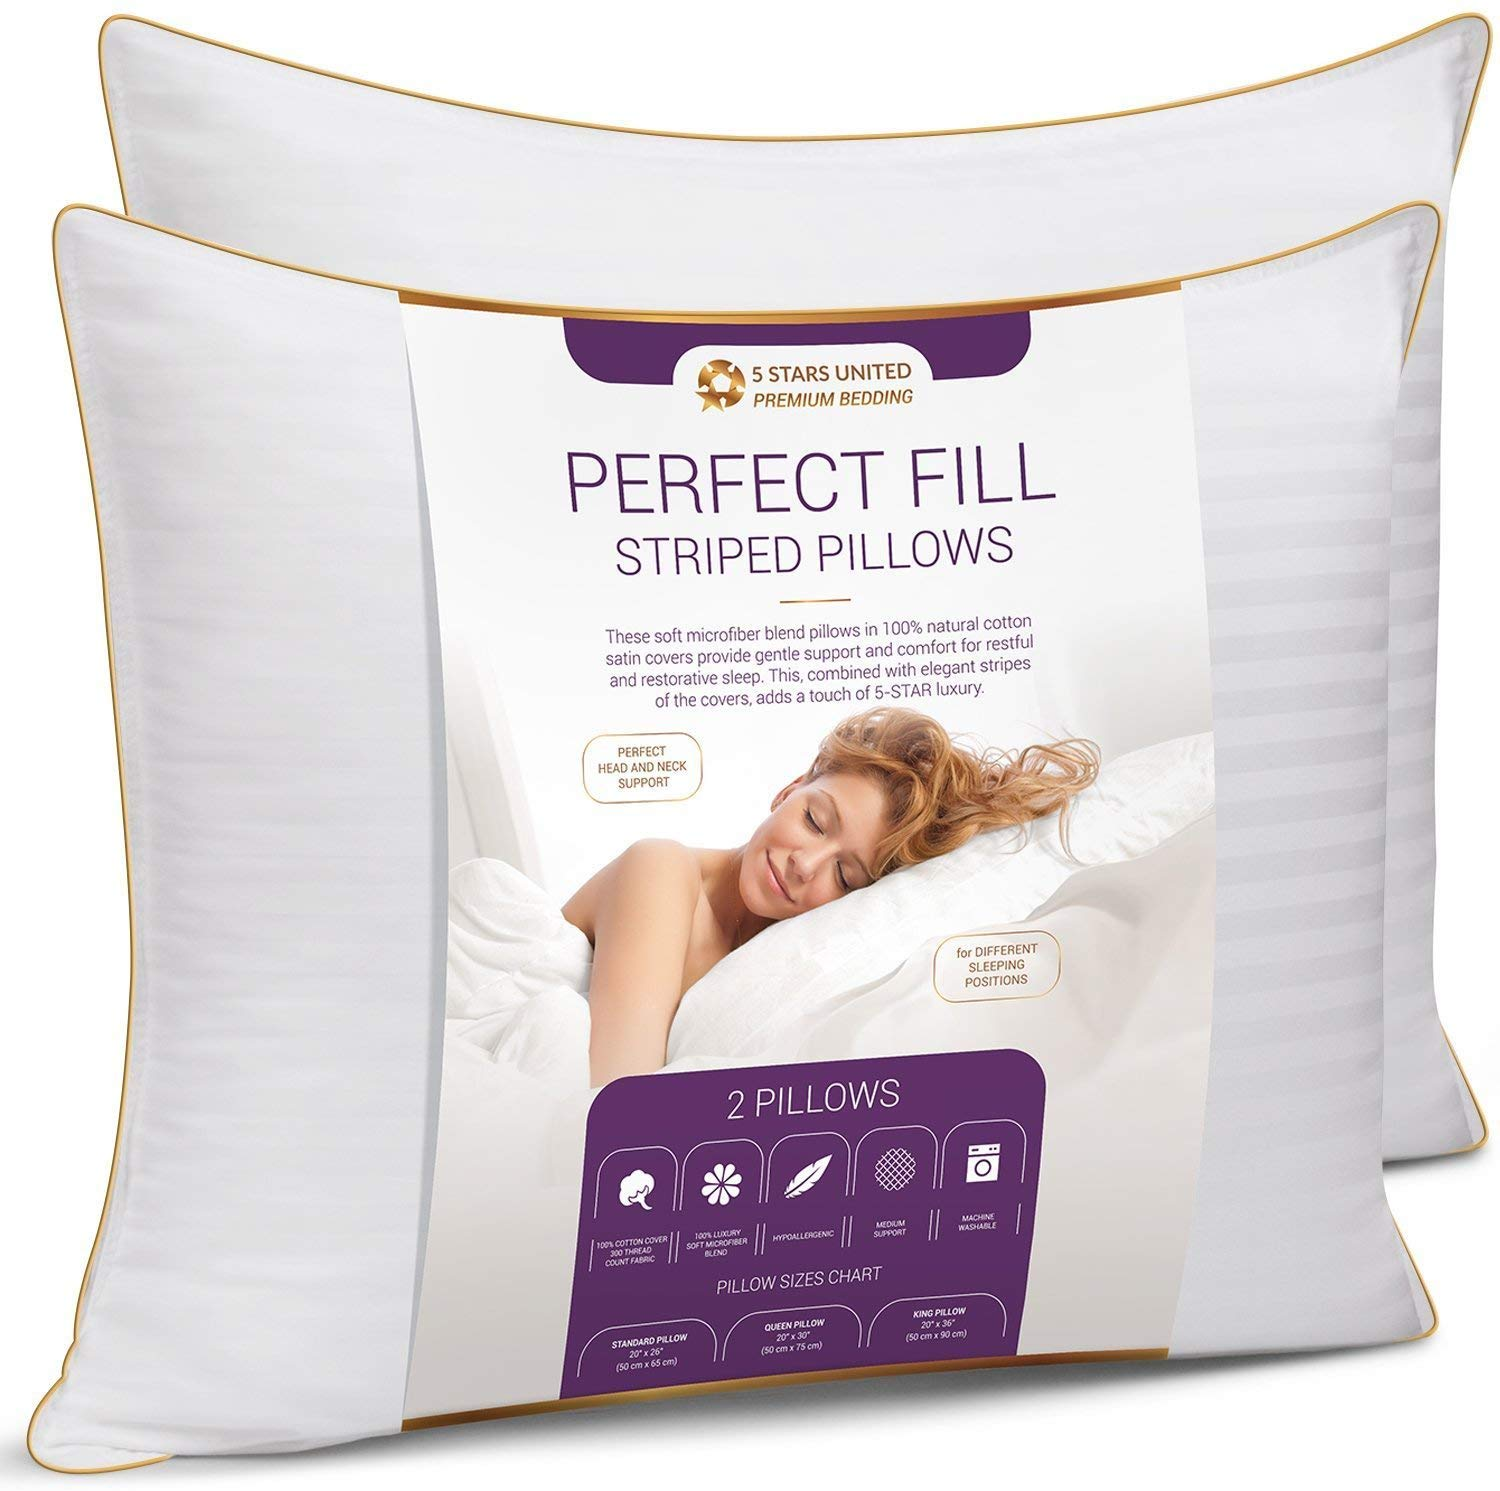 Top 10 Best King Size Pillows in 2020 Reviews